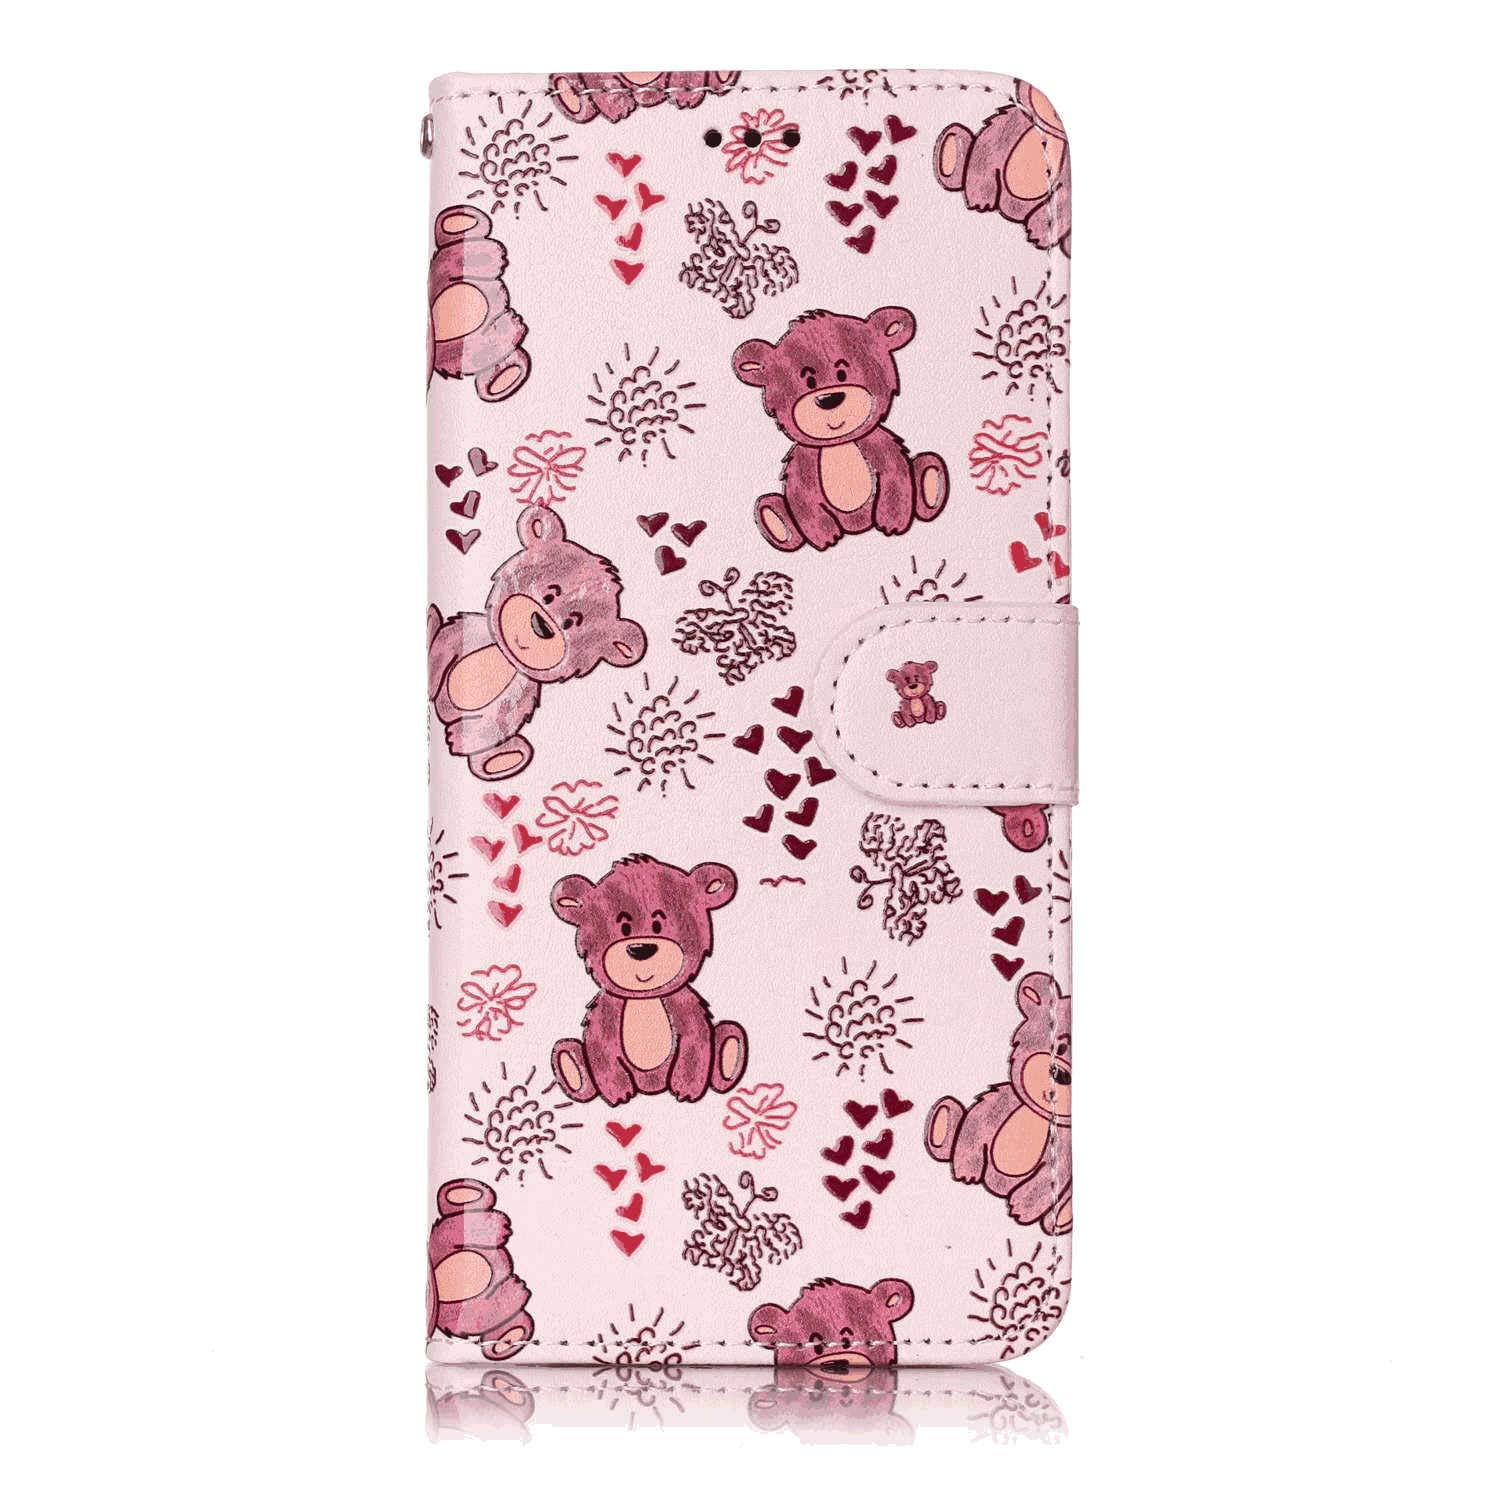 Stylish Cover Compatible with iPhone 11 Bear Leather Flip Case Wallet for iPhone 11